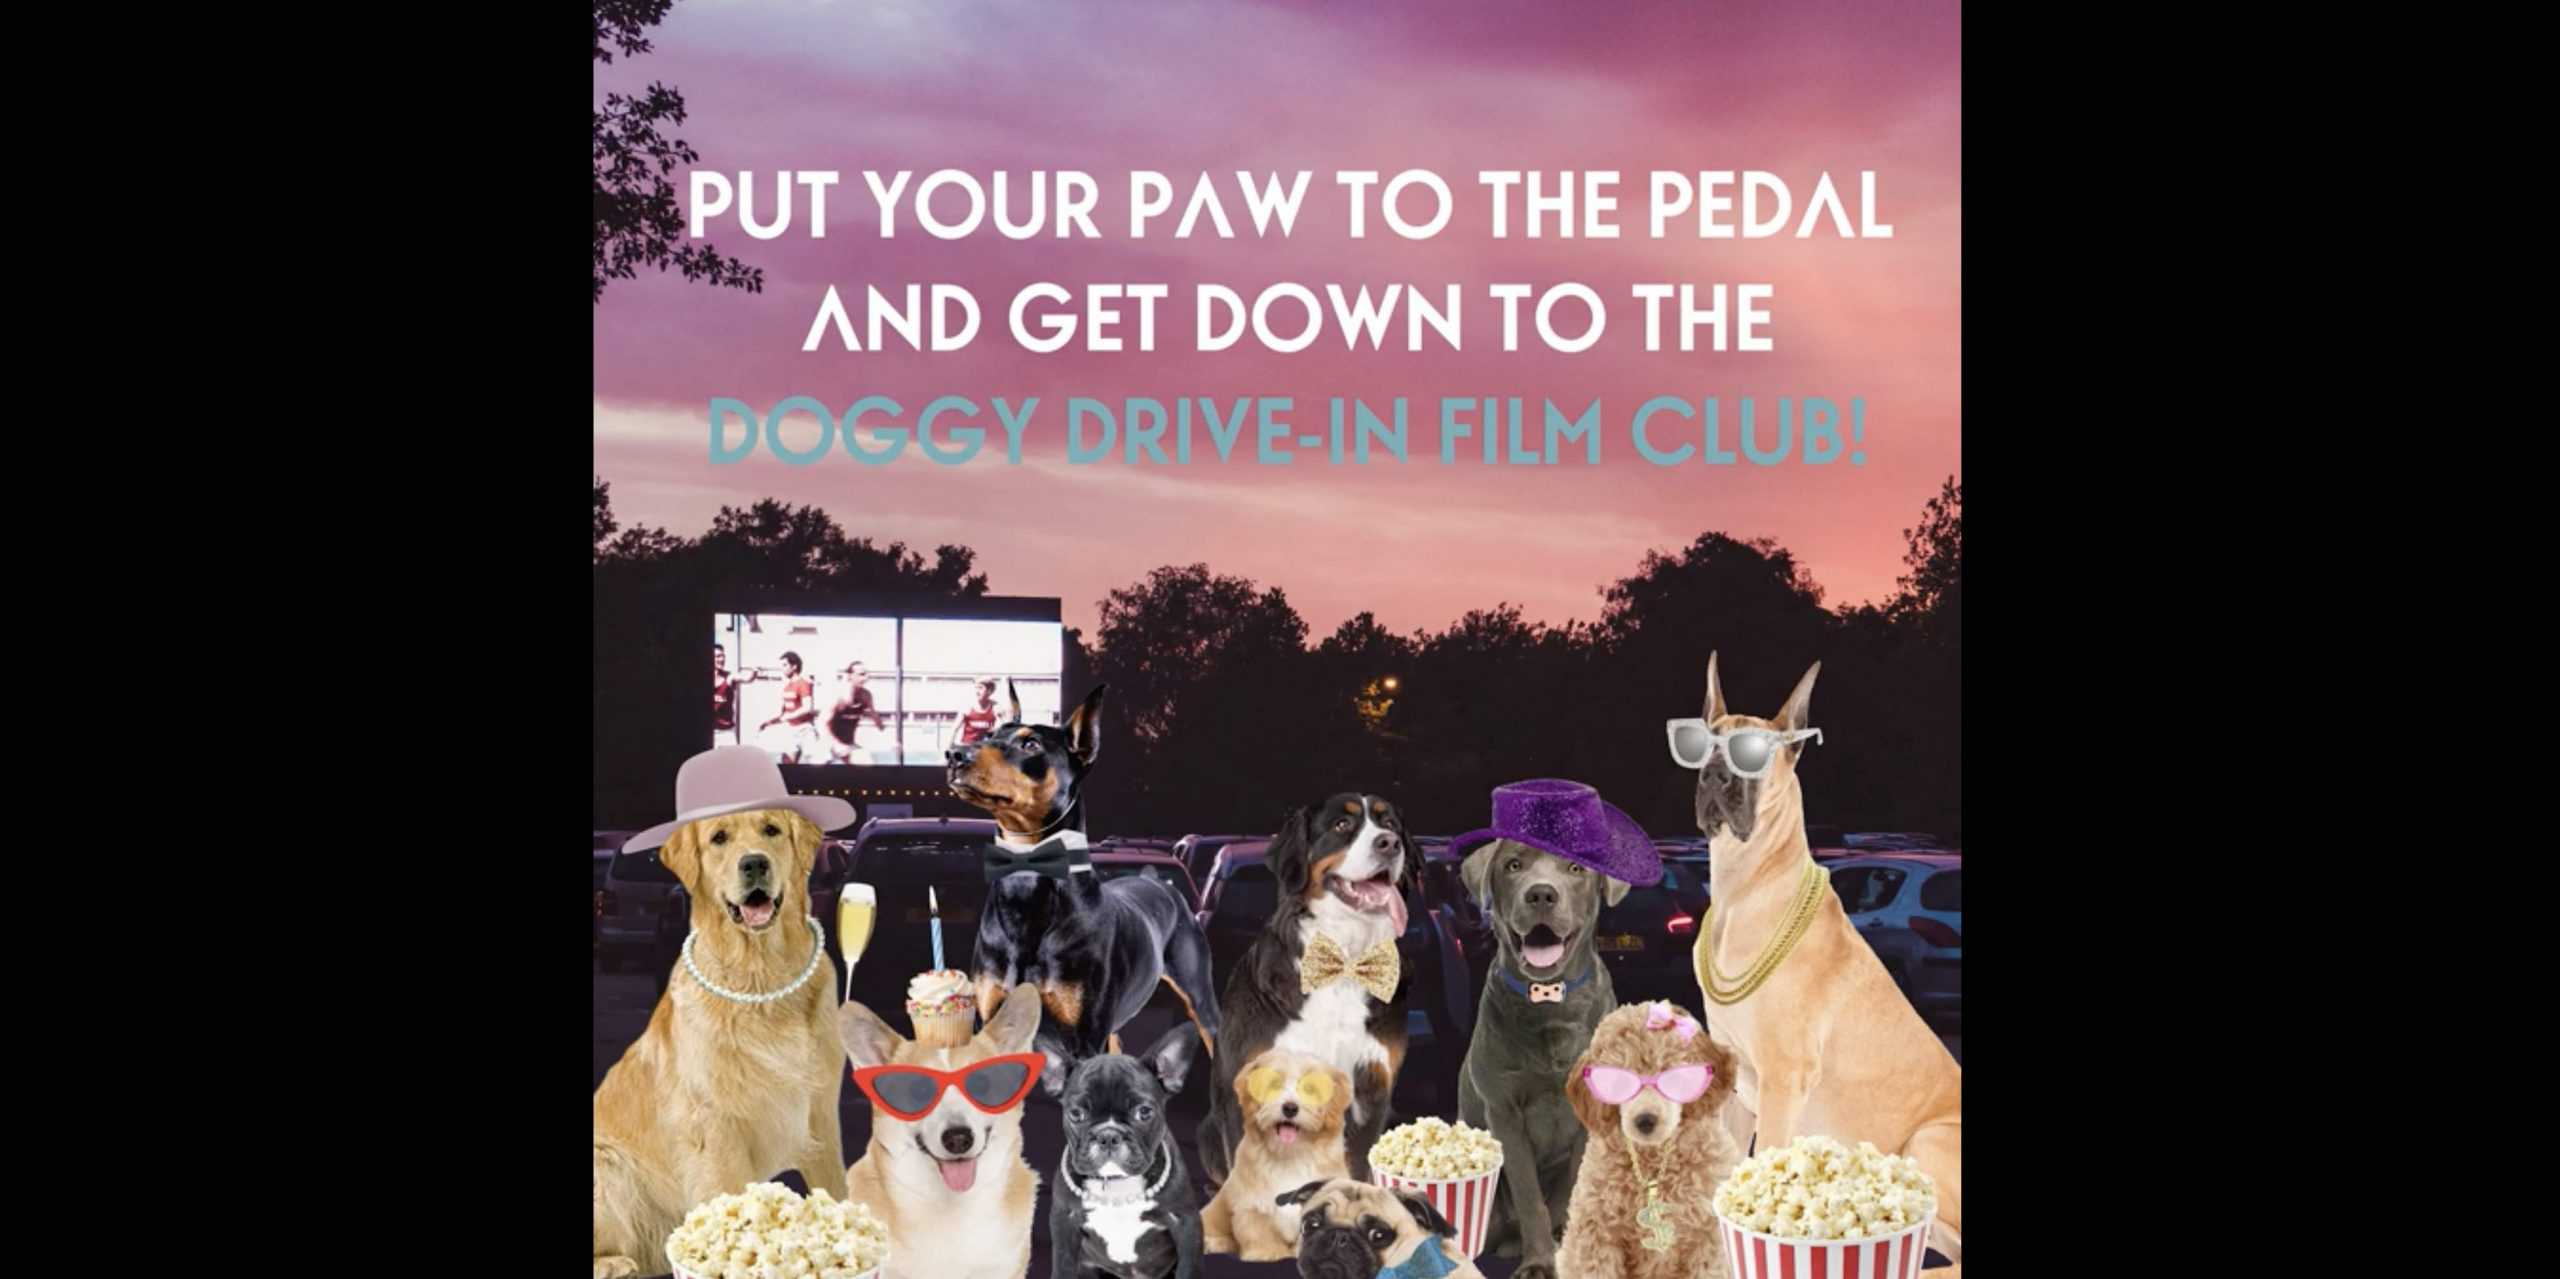 Doggy Drive In Film Club Brent Cross - Rooftop Film Club